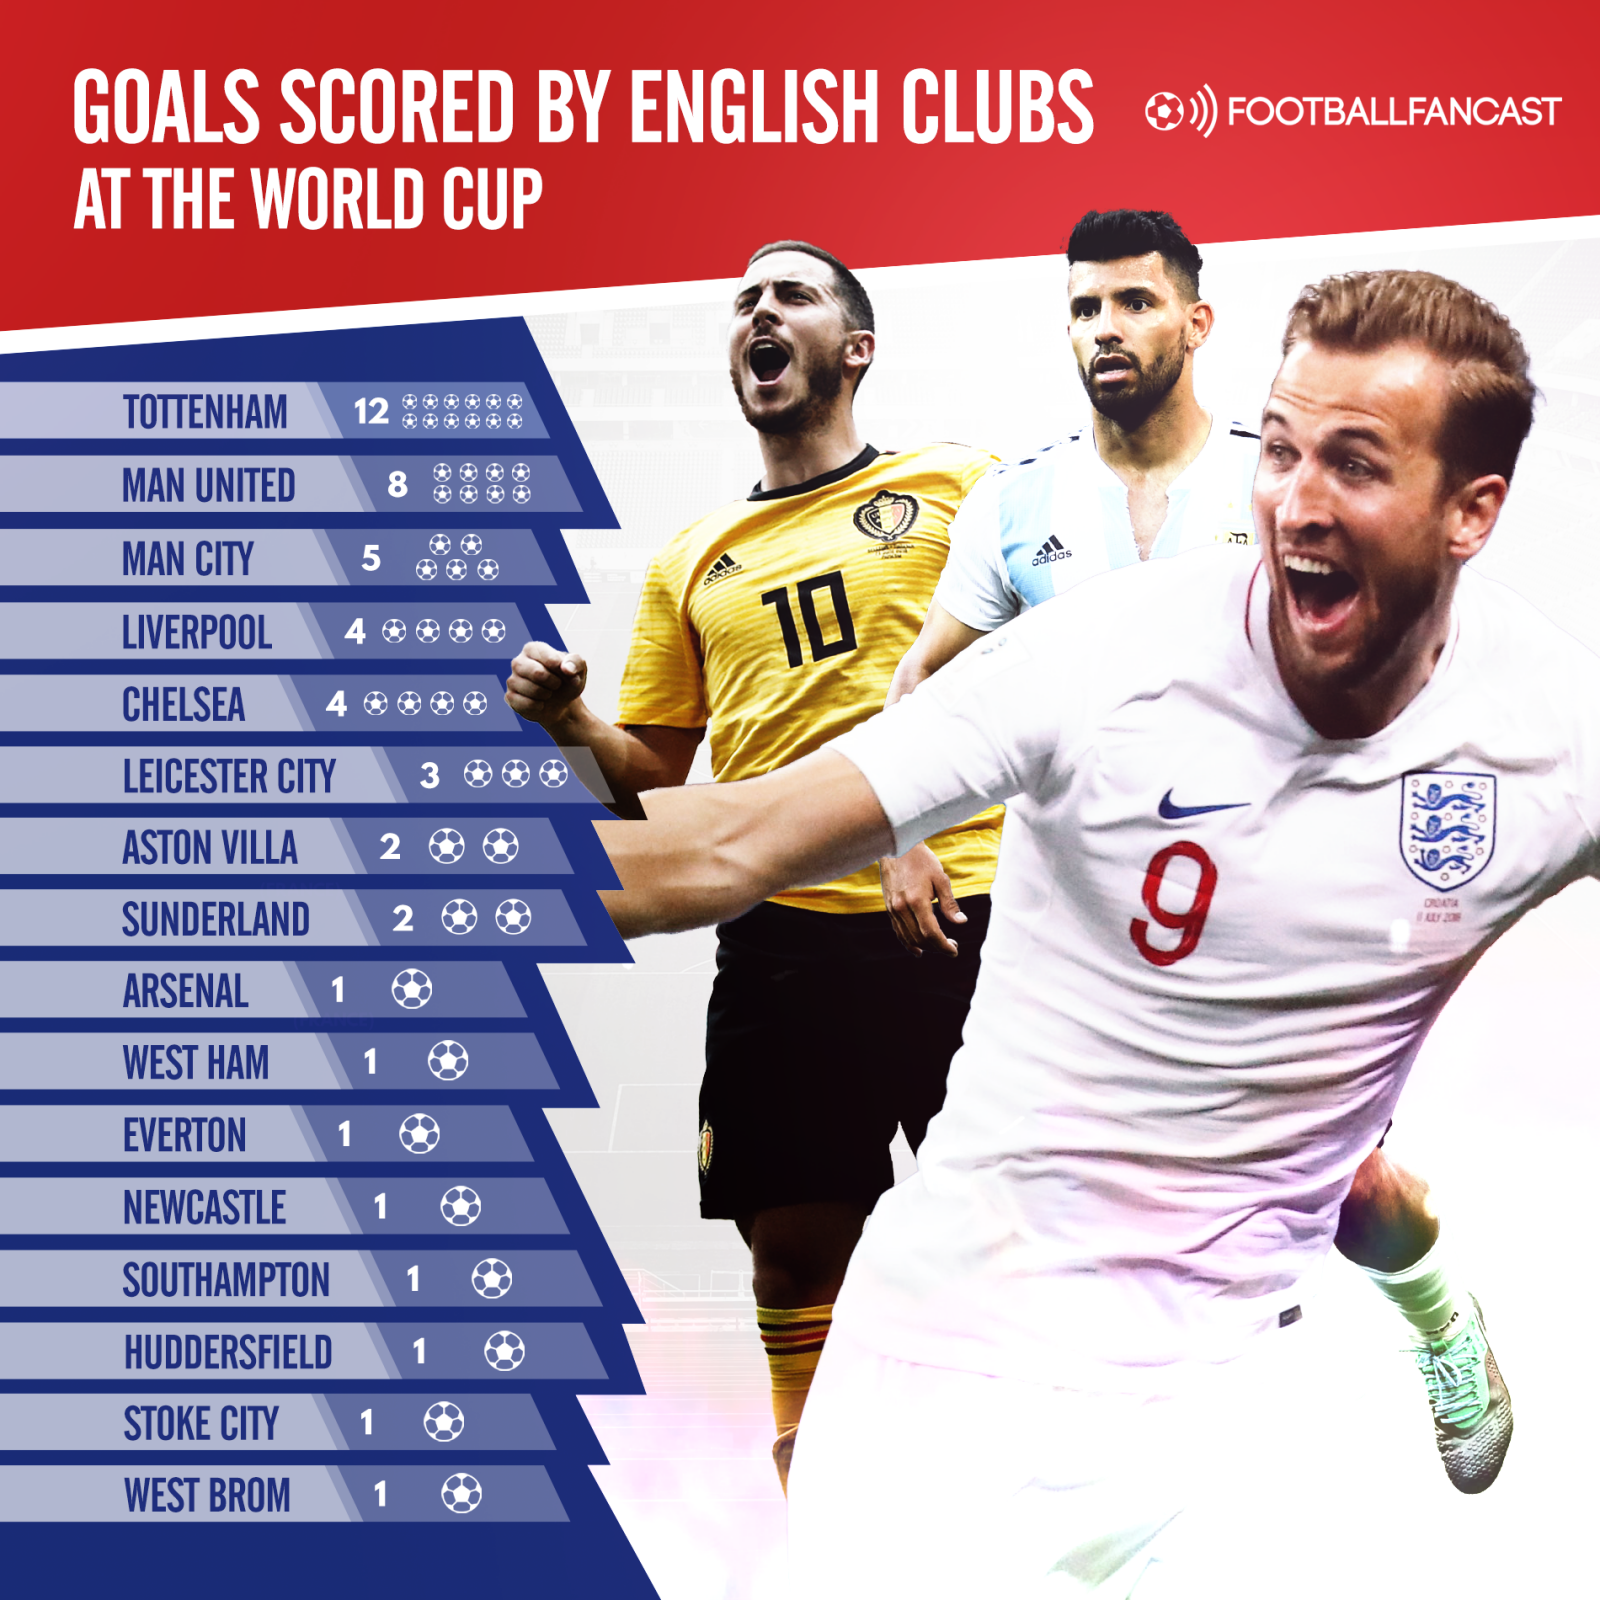 Goals Scored By English Clubs at the World Cup